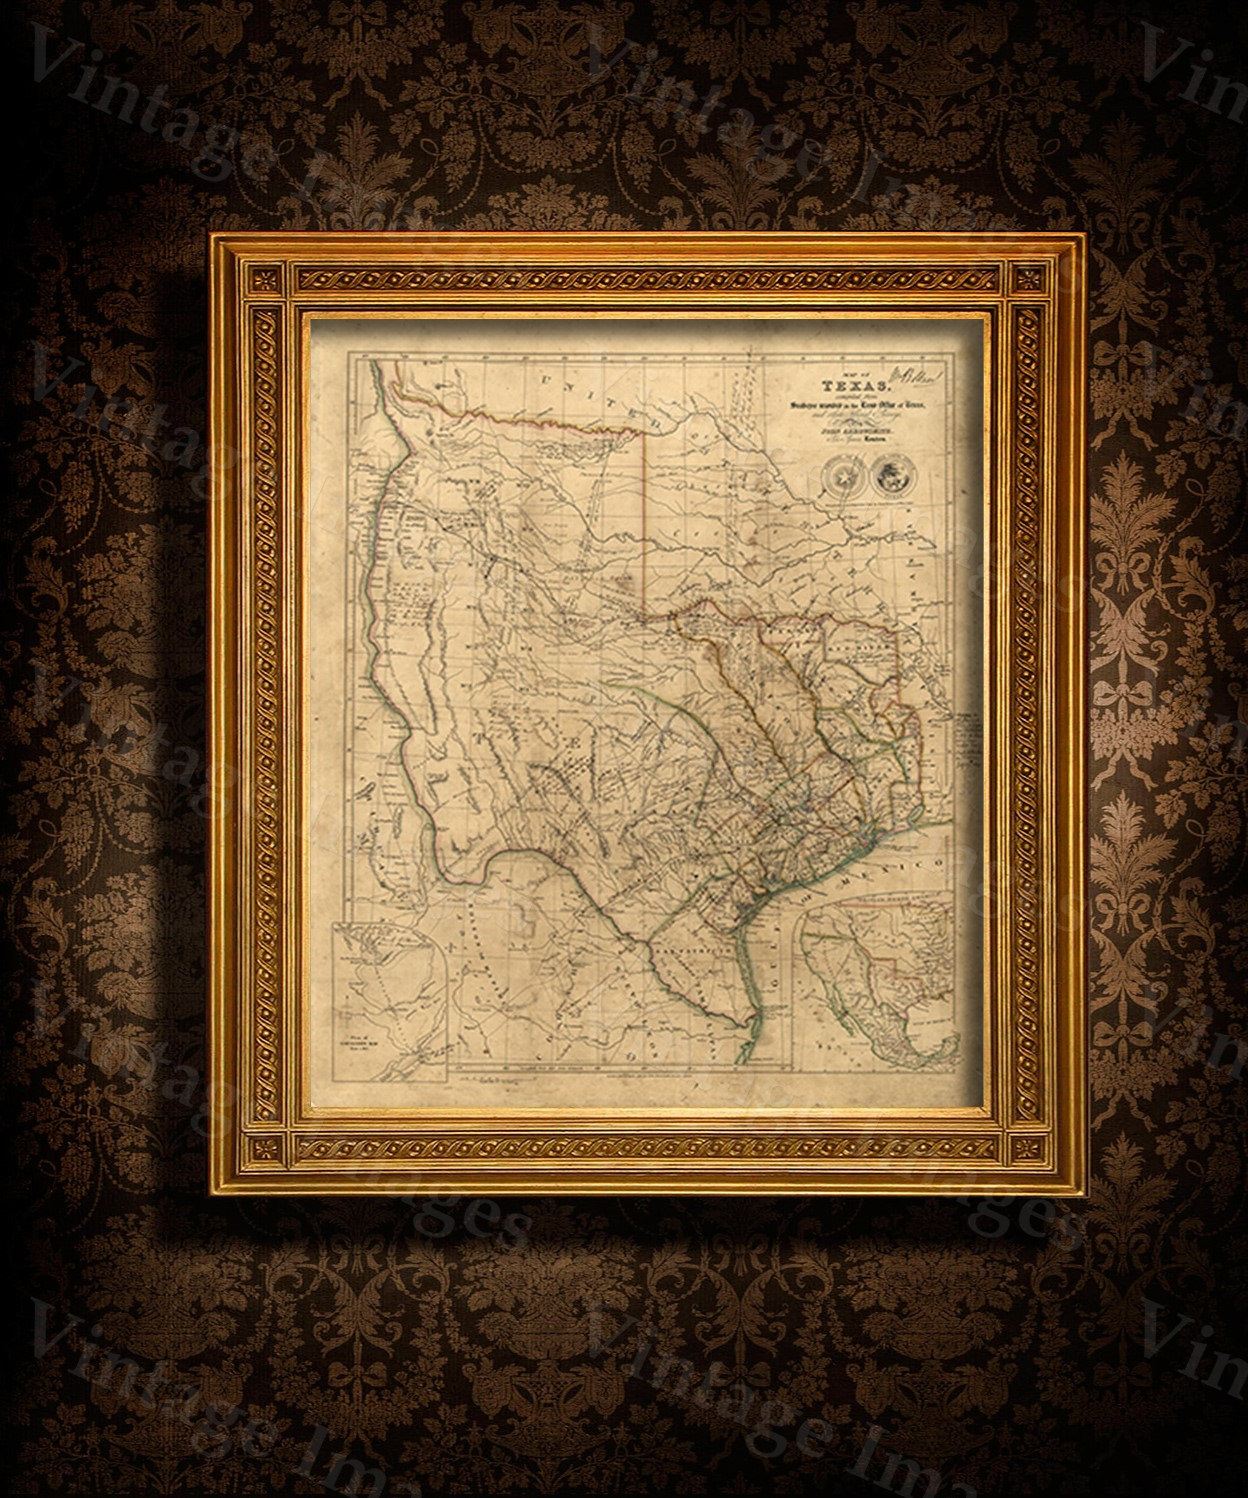 Old Texas Wall Map 1841 Historical Texas Map Antique Decorator - Old Texas Map Wall Art